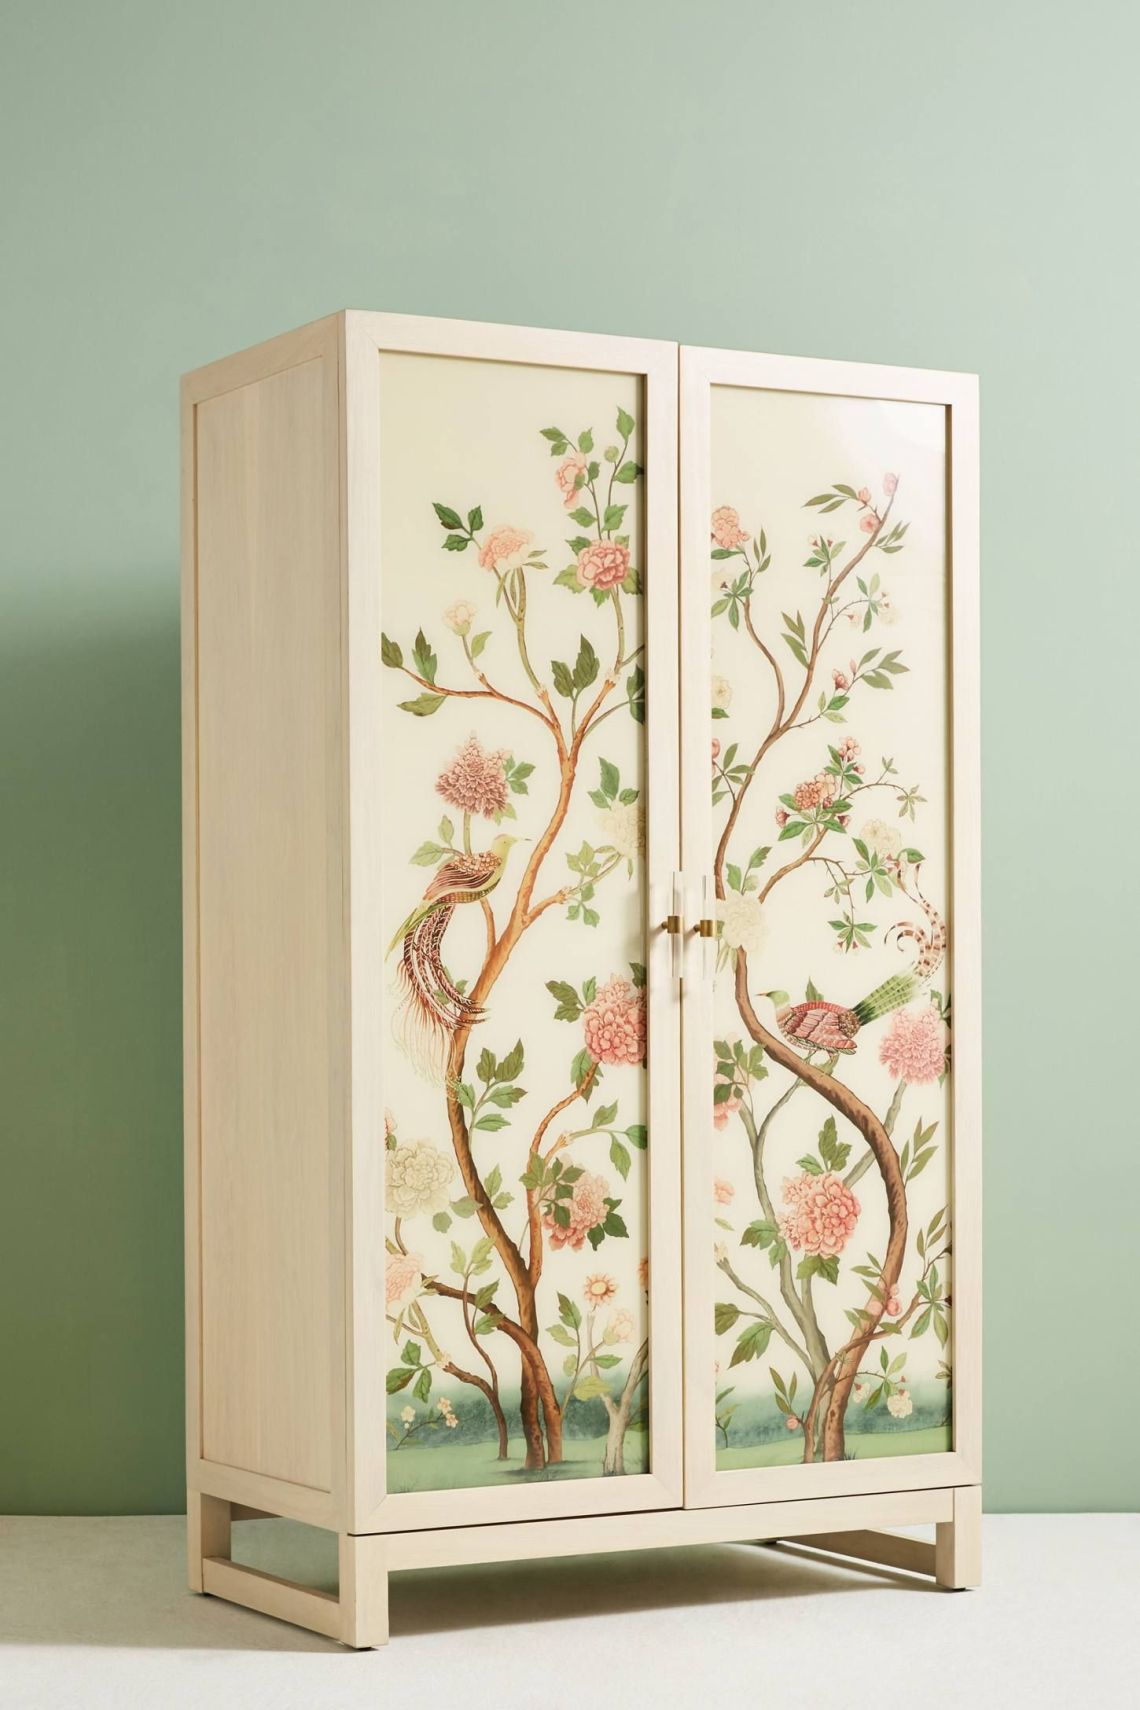 Apartment Anthropologie Armoire - 4d18c16f11e6ecb26a2c4d5d10b0fd84_Popular Apartment Anthropologie Armoire - 4d18c16f11e6ecb26a2c4d5d10b0fd84  Graphic_494669.jpg